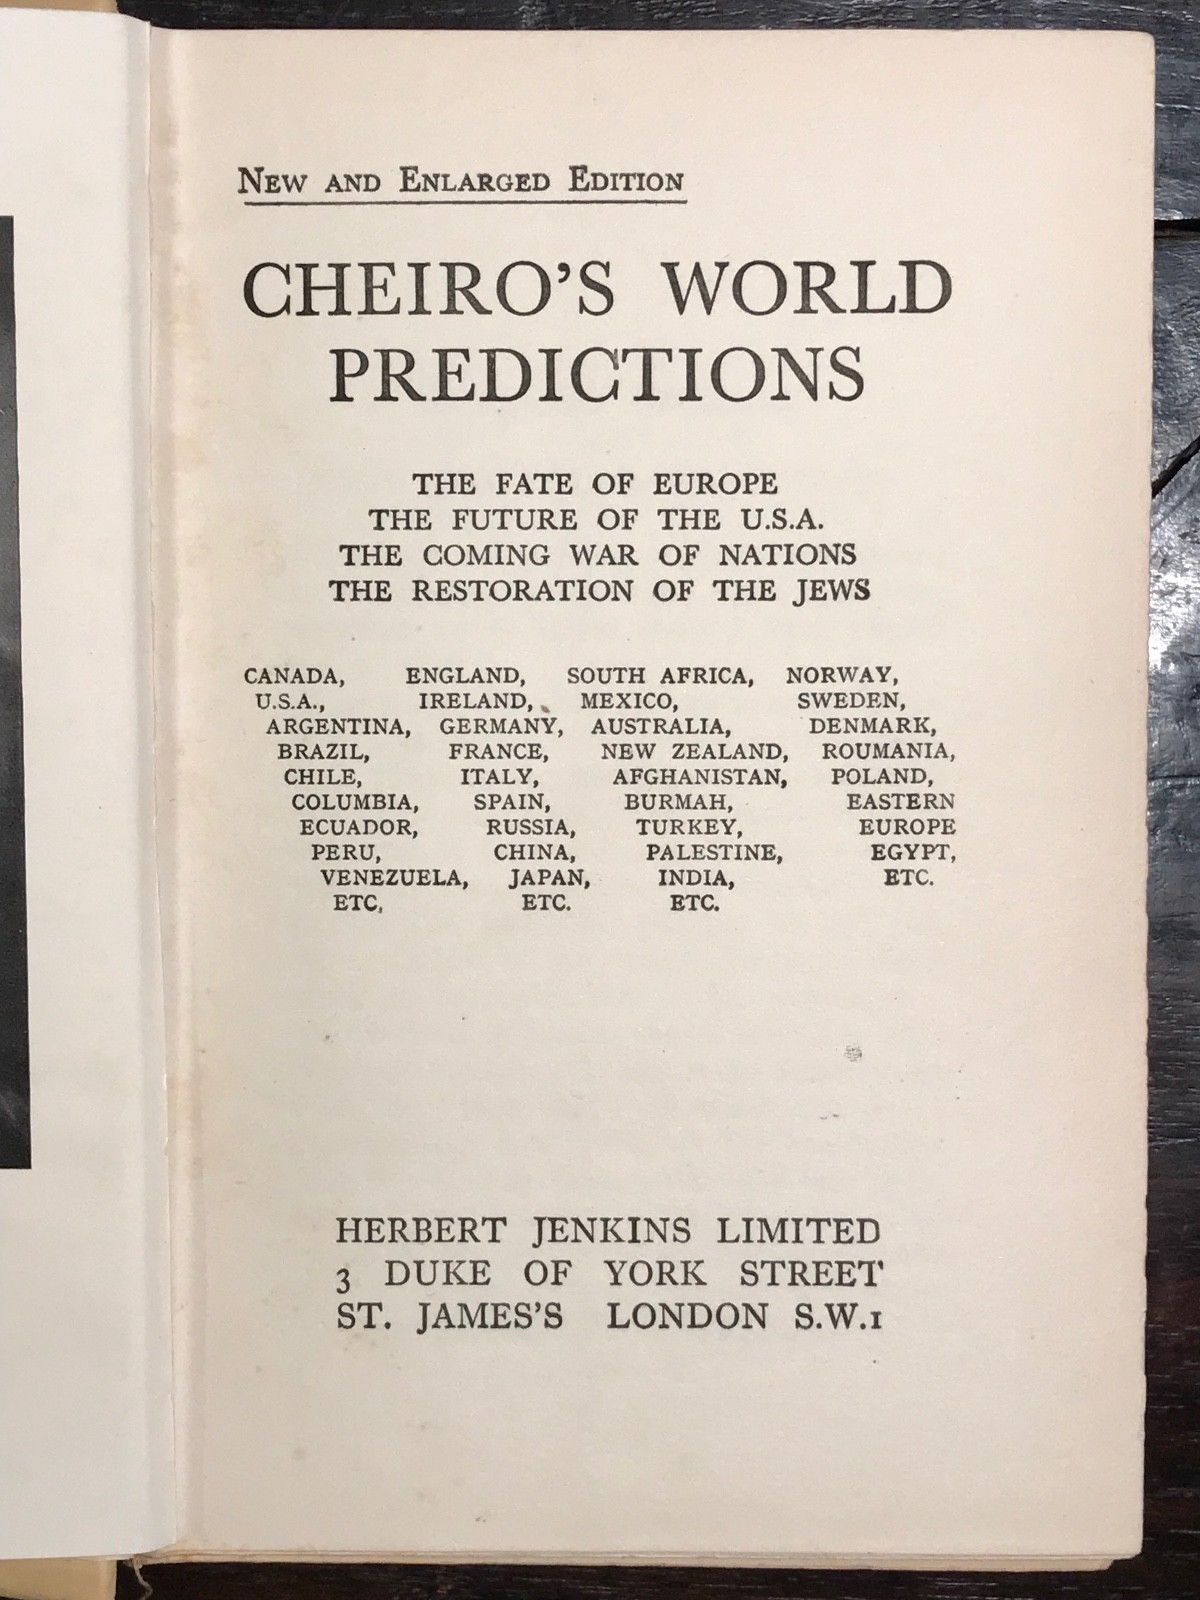 CHEIRO'S WORLD PREDICTIONS - CHEIRO (Warner) - 1928, Psychic